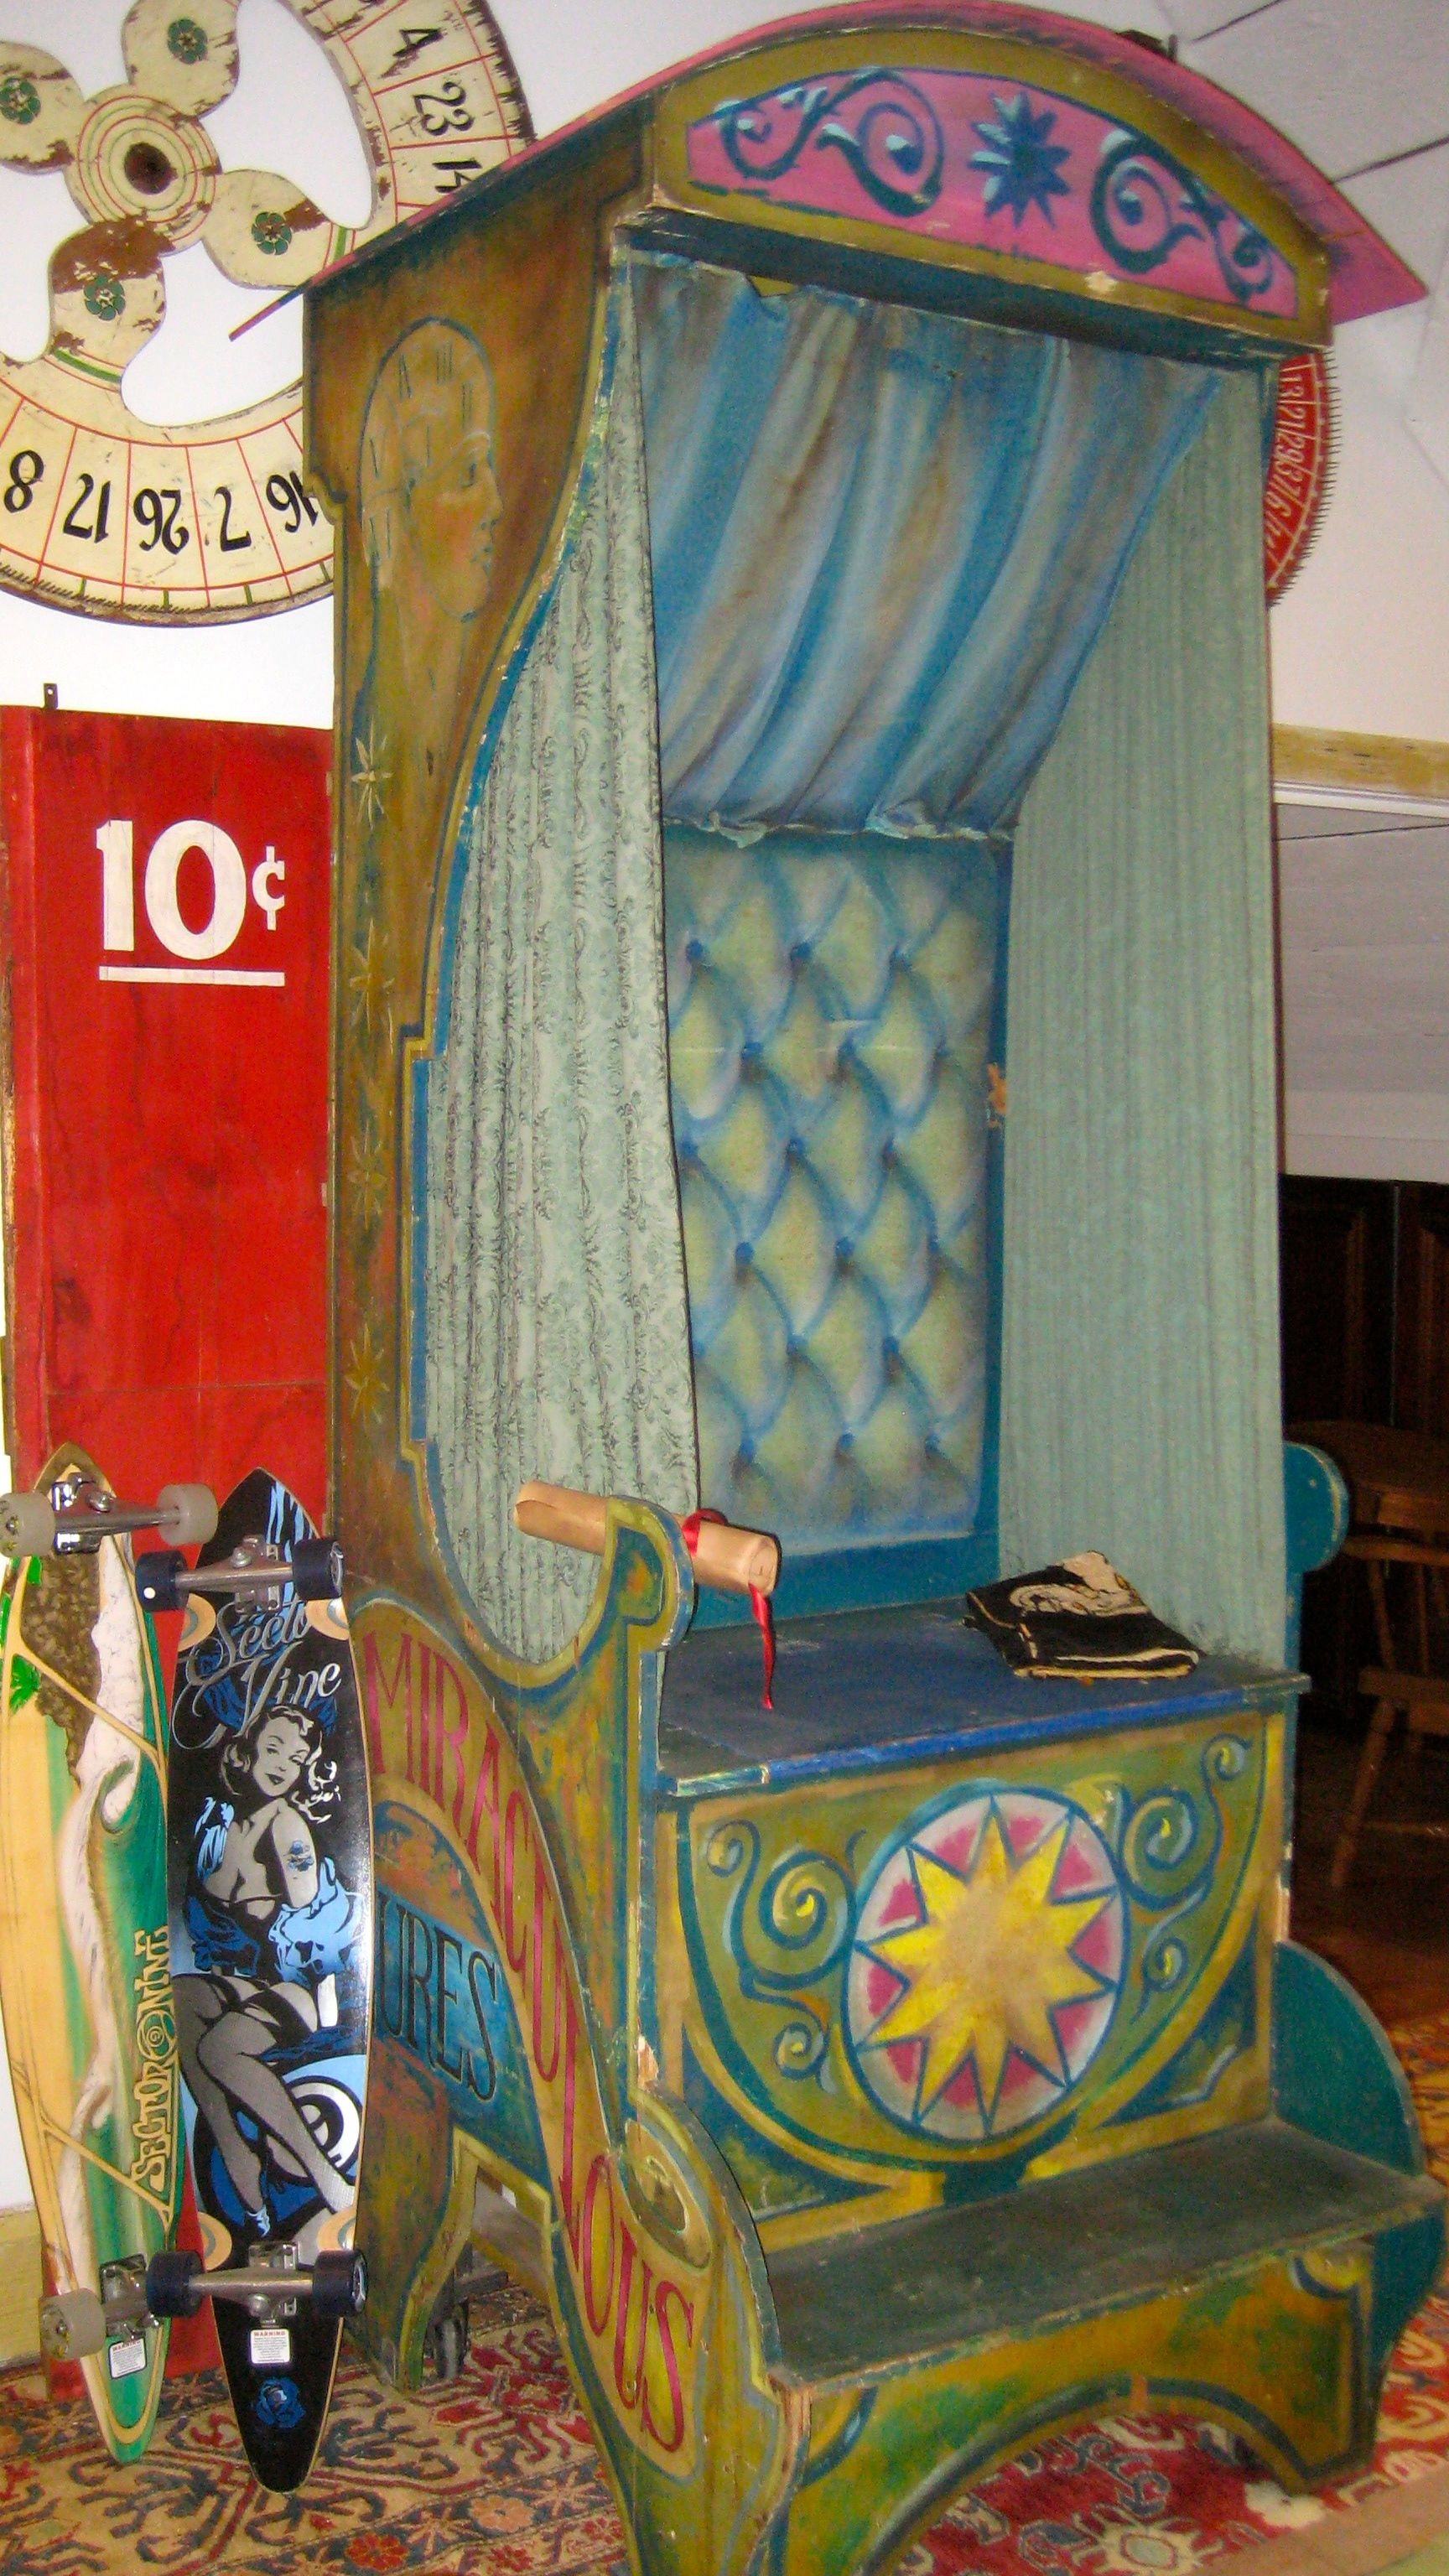 Fortune Teller's booth, everybody needs one of these